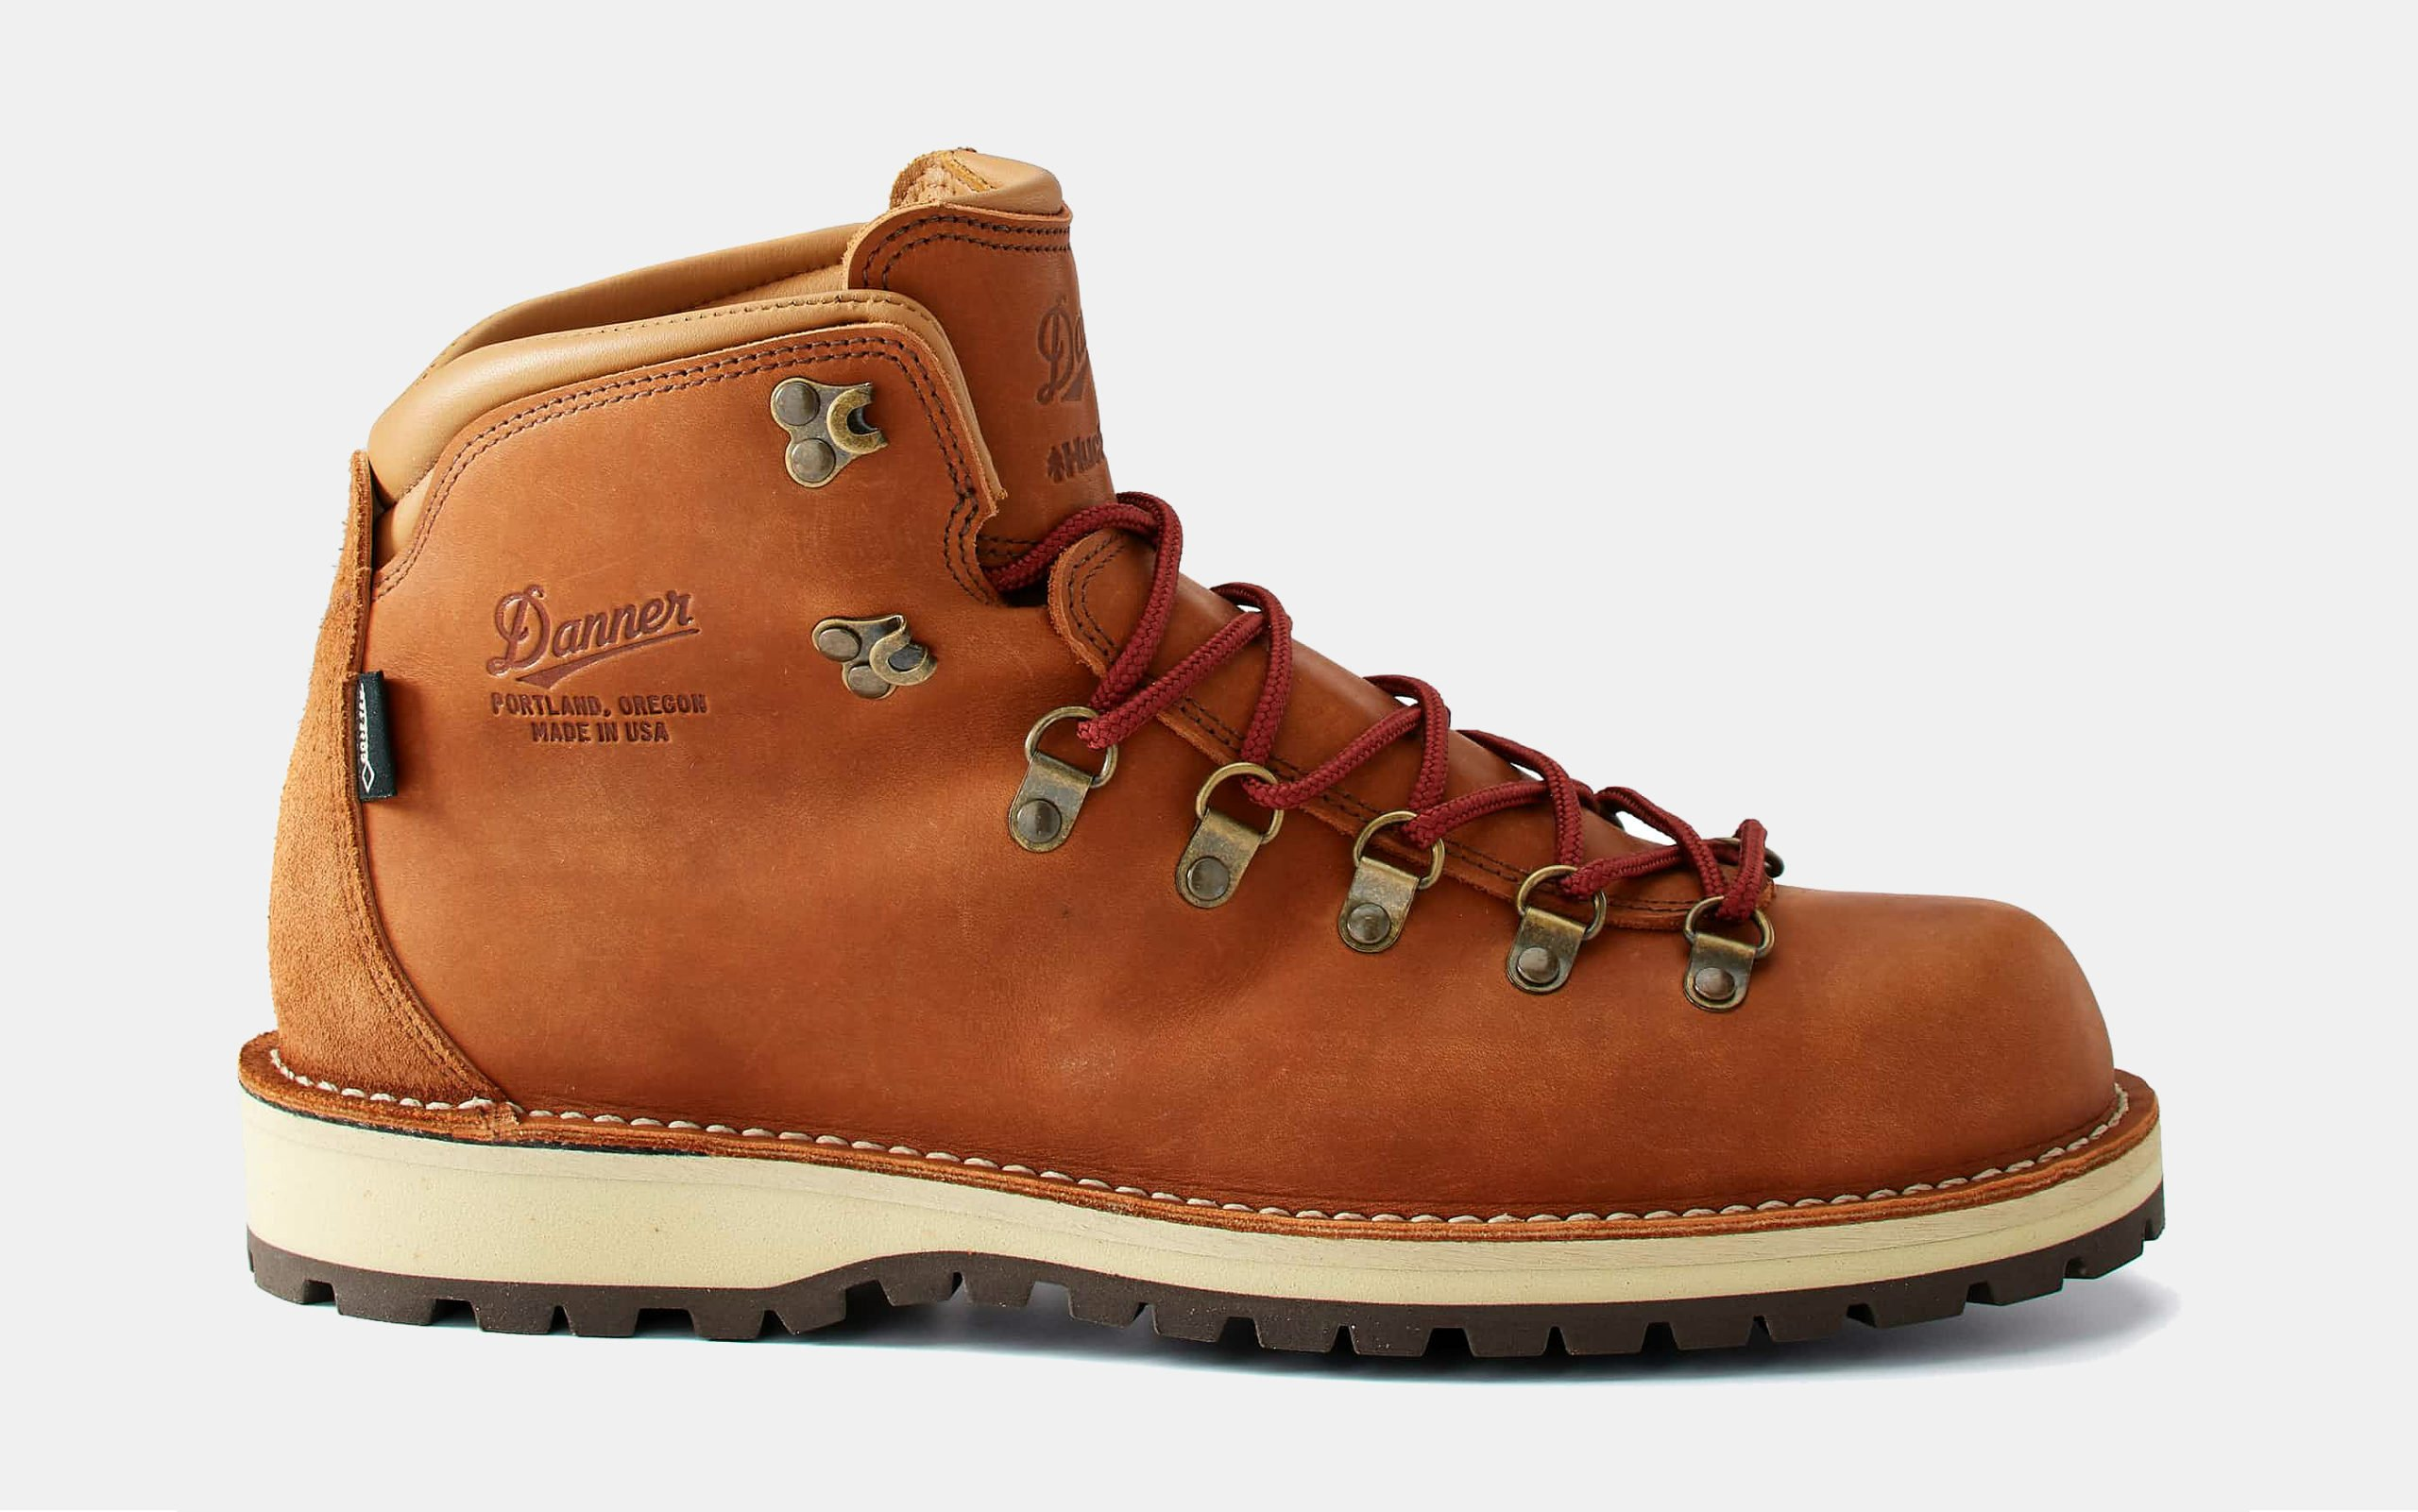 Danner x Huckberry Mountain Pass 'Gold Rush' Boots